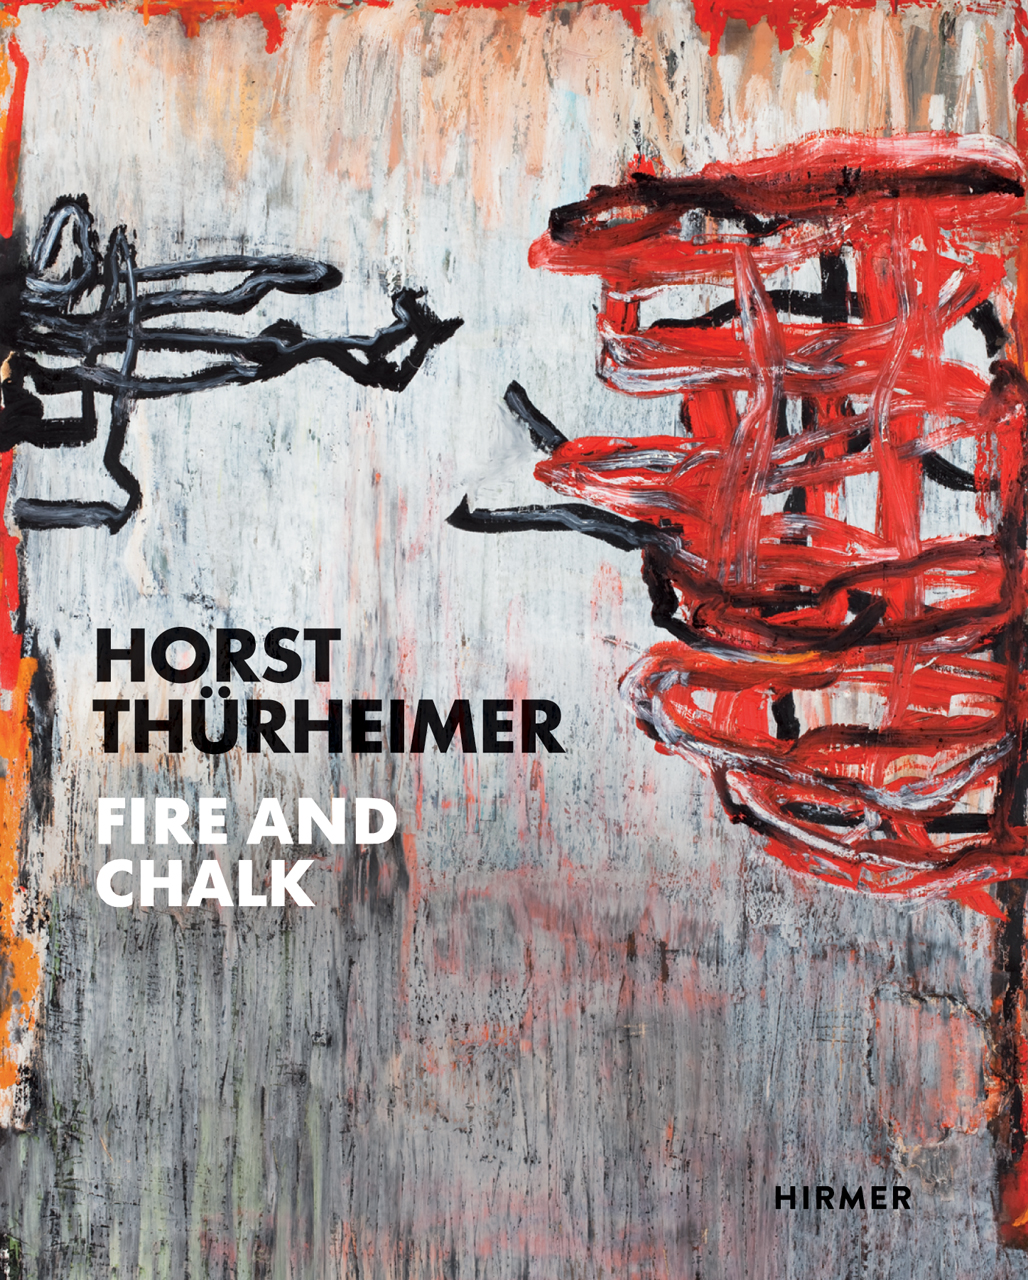 Horst Thürheimer: Fire and Chalk